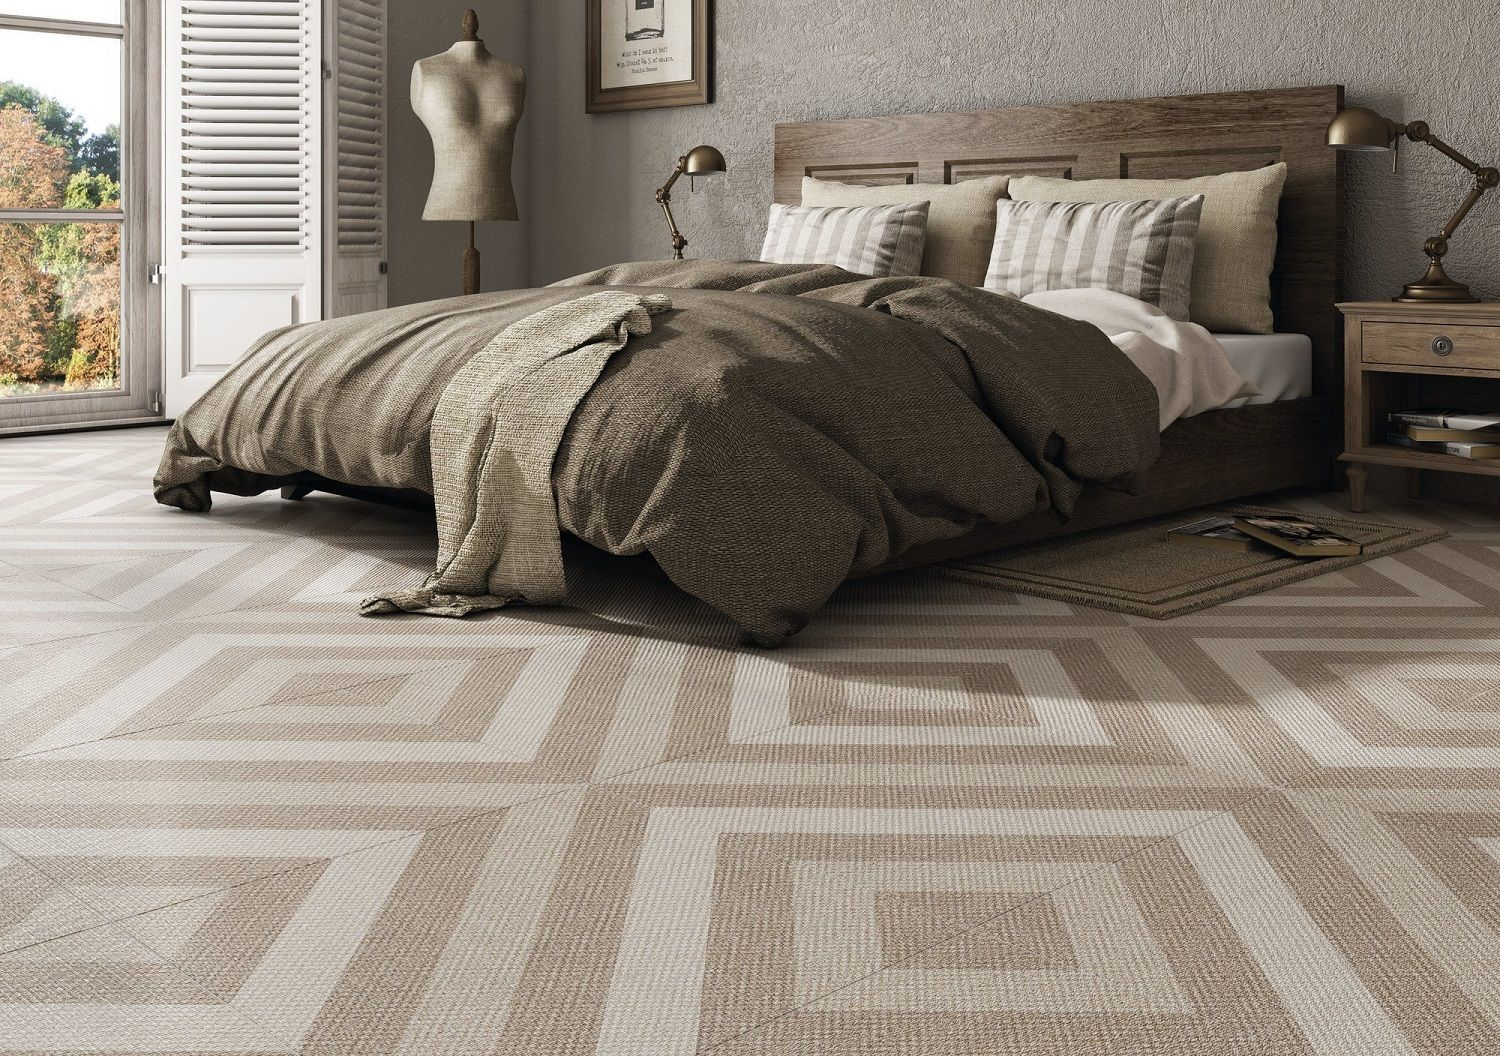 Pin by emctiles on Tile Trends for 2018 Bedroom decor